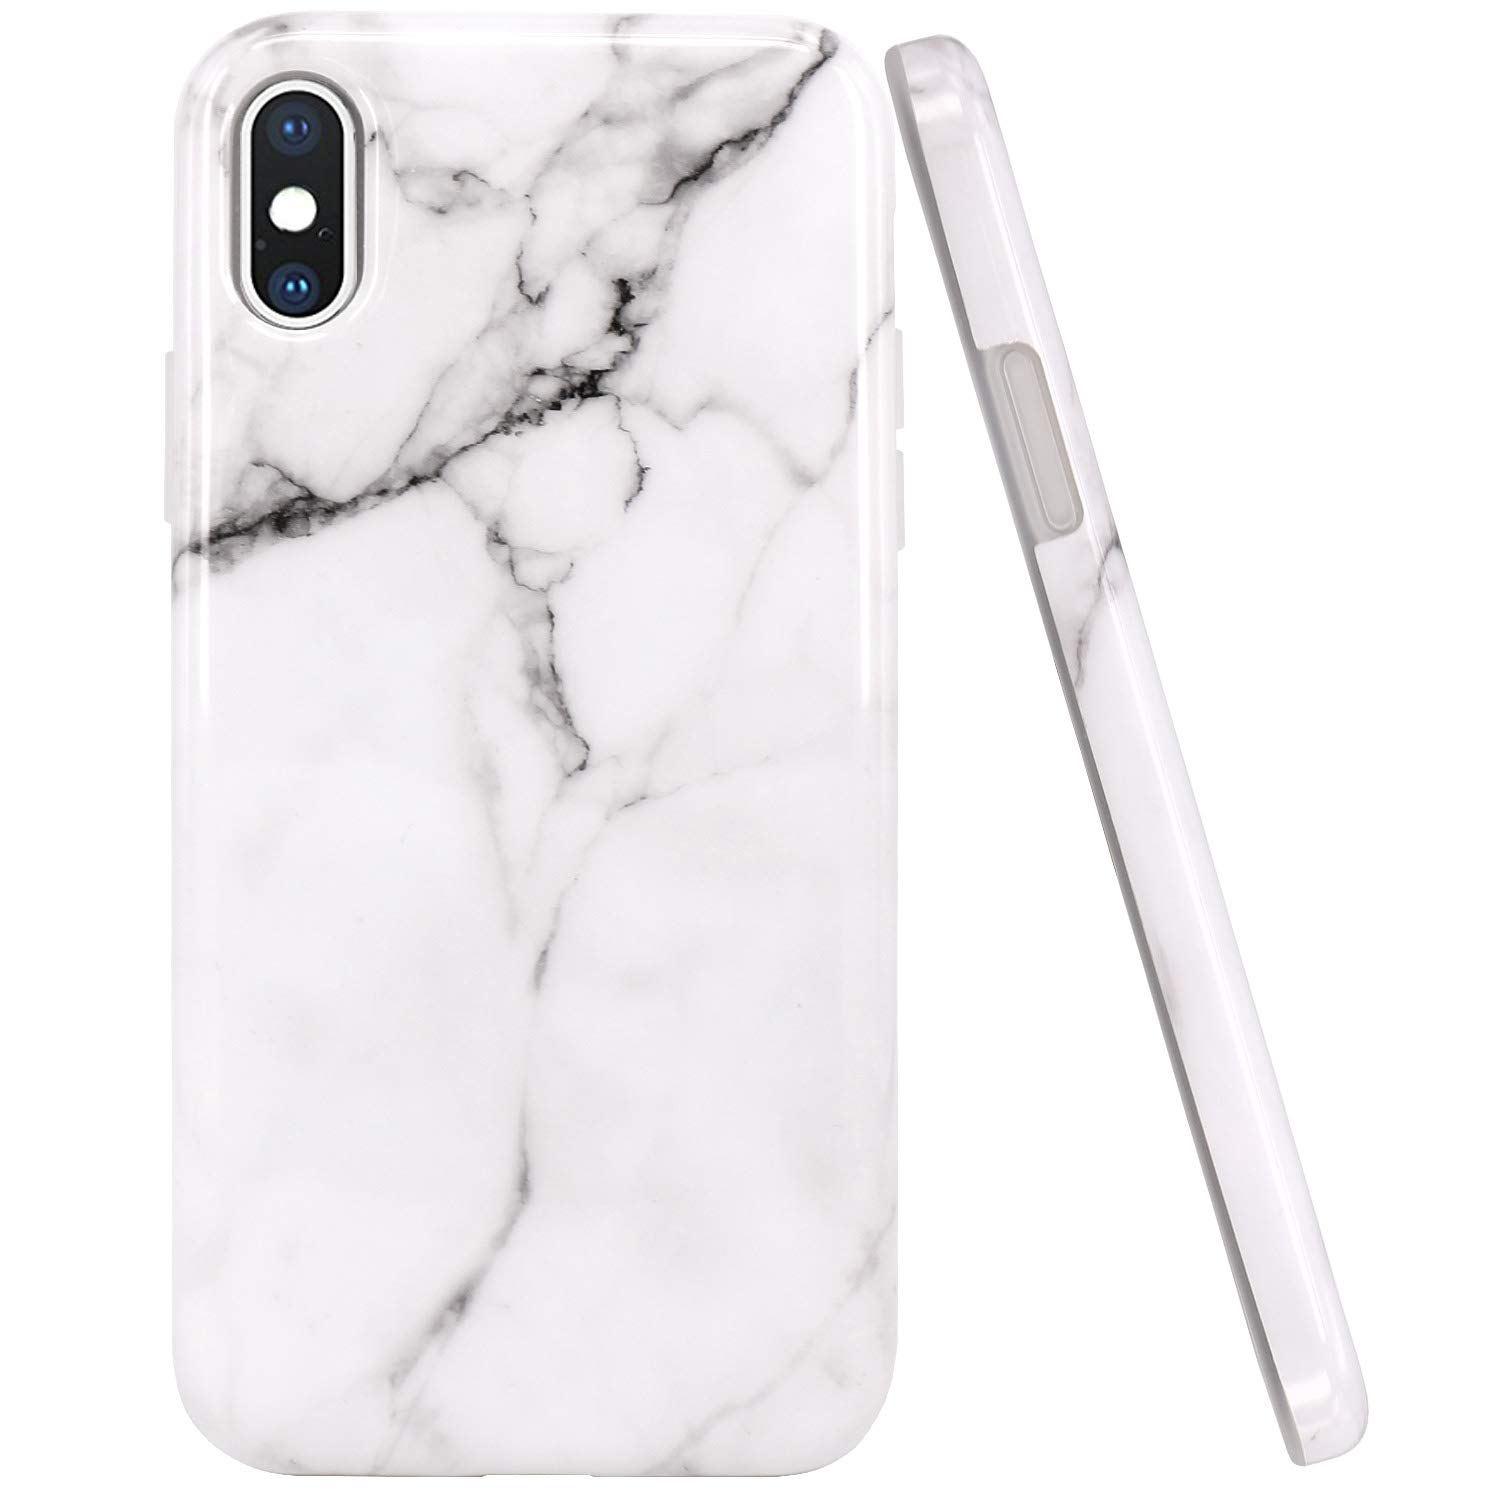 14c111923 Amazon.com  JAHOLAN iPhone X Case iPhone Xs Case White Marble Design Clear  Bumper Glossy TPU Soft Rubber Silicone Cover Phone Case for iPhone X iPhone  Xs  ...